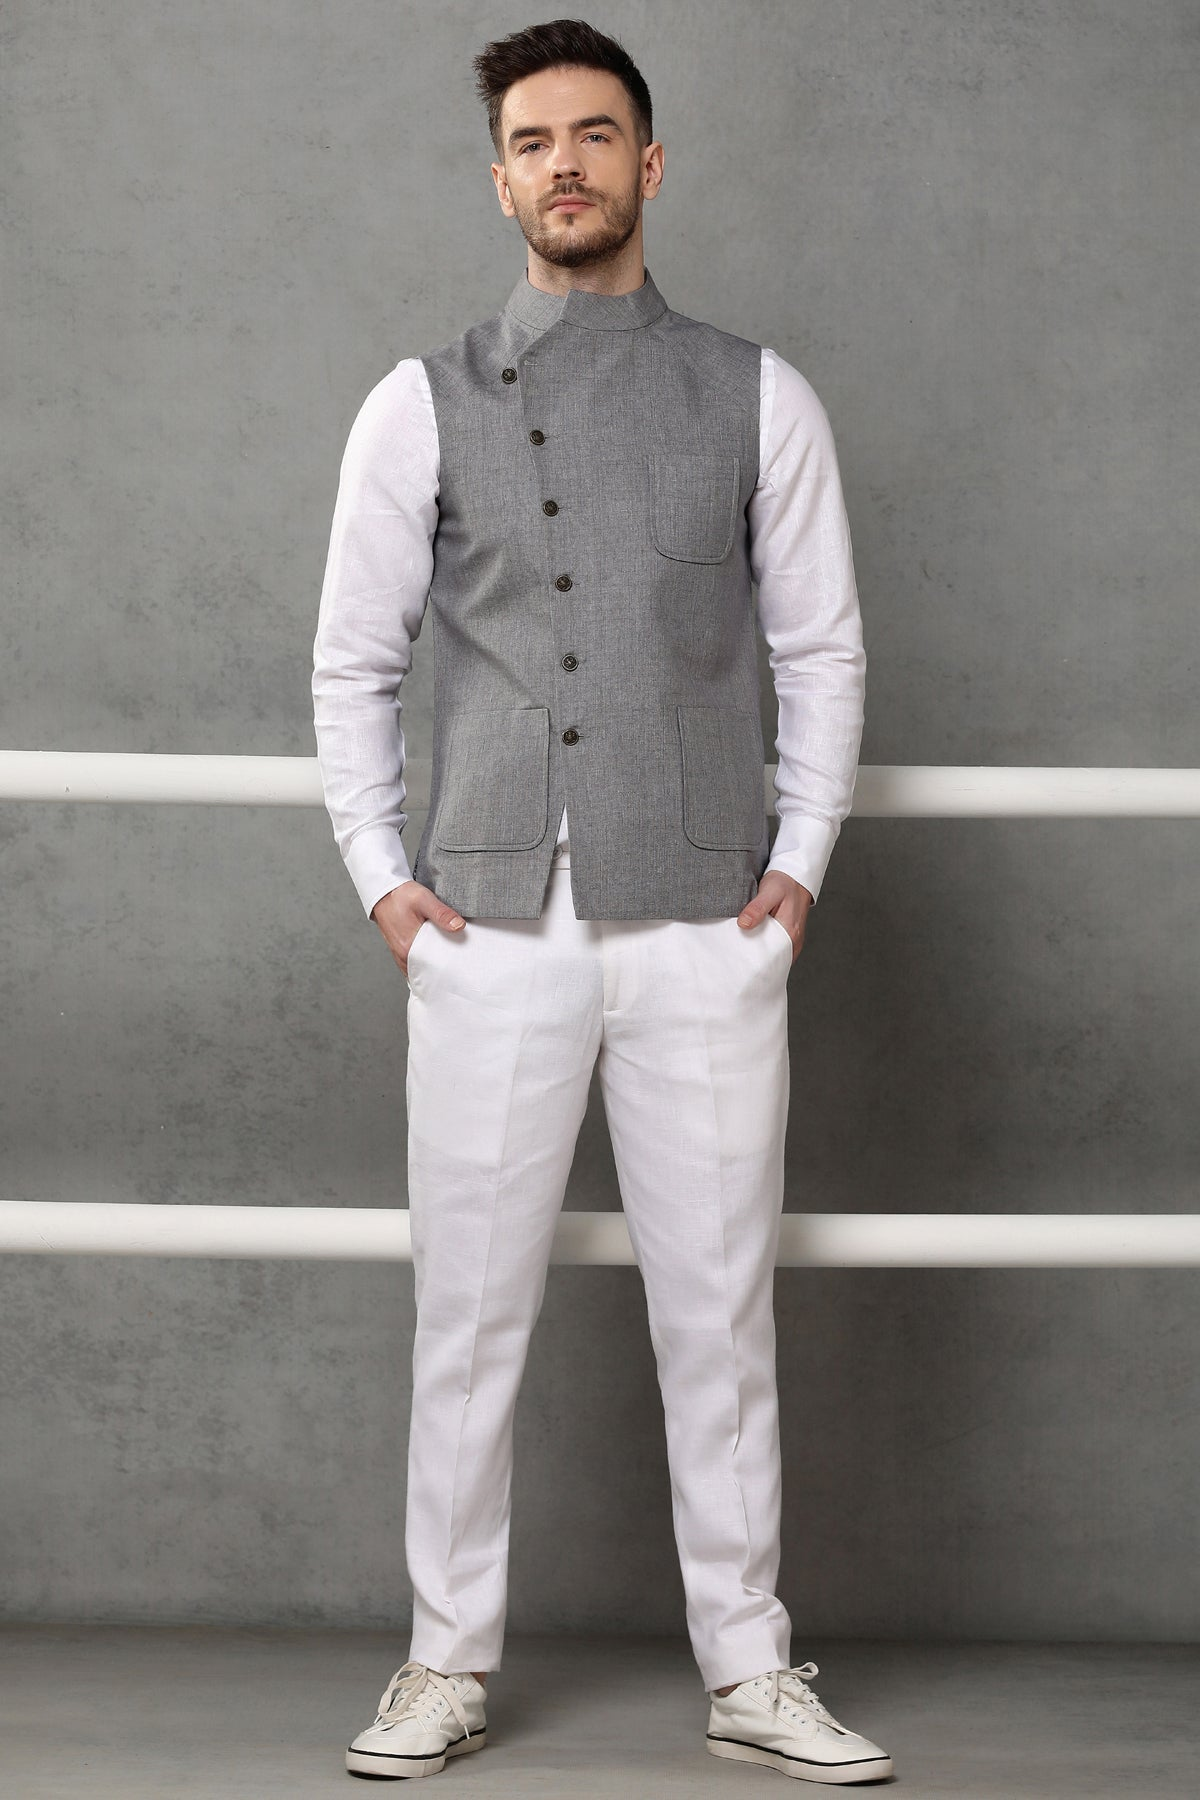 The Twist Nehru Jacket